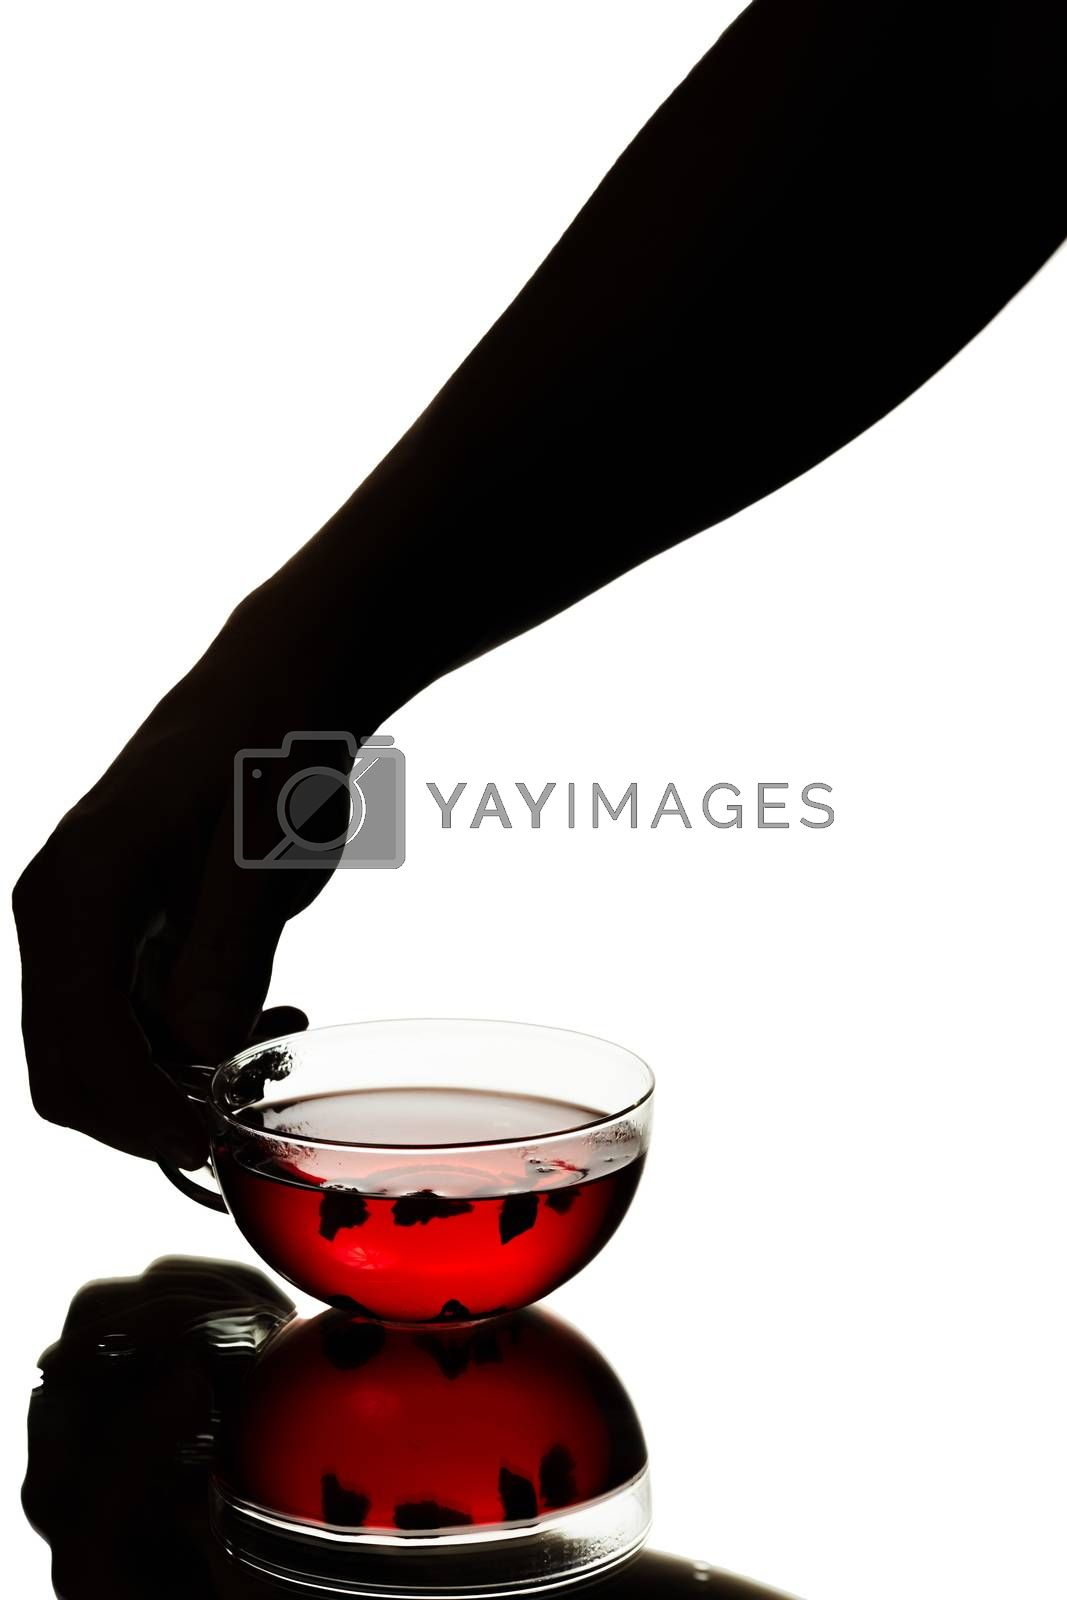 Royalty free image of Hand holding a cup of tea by maxsol